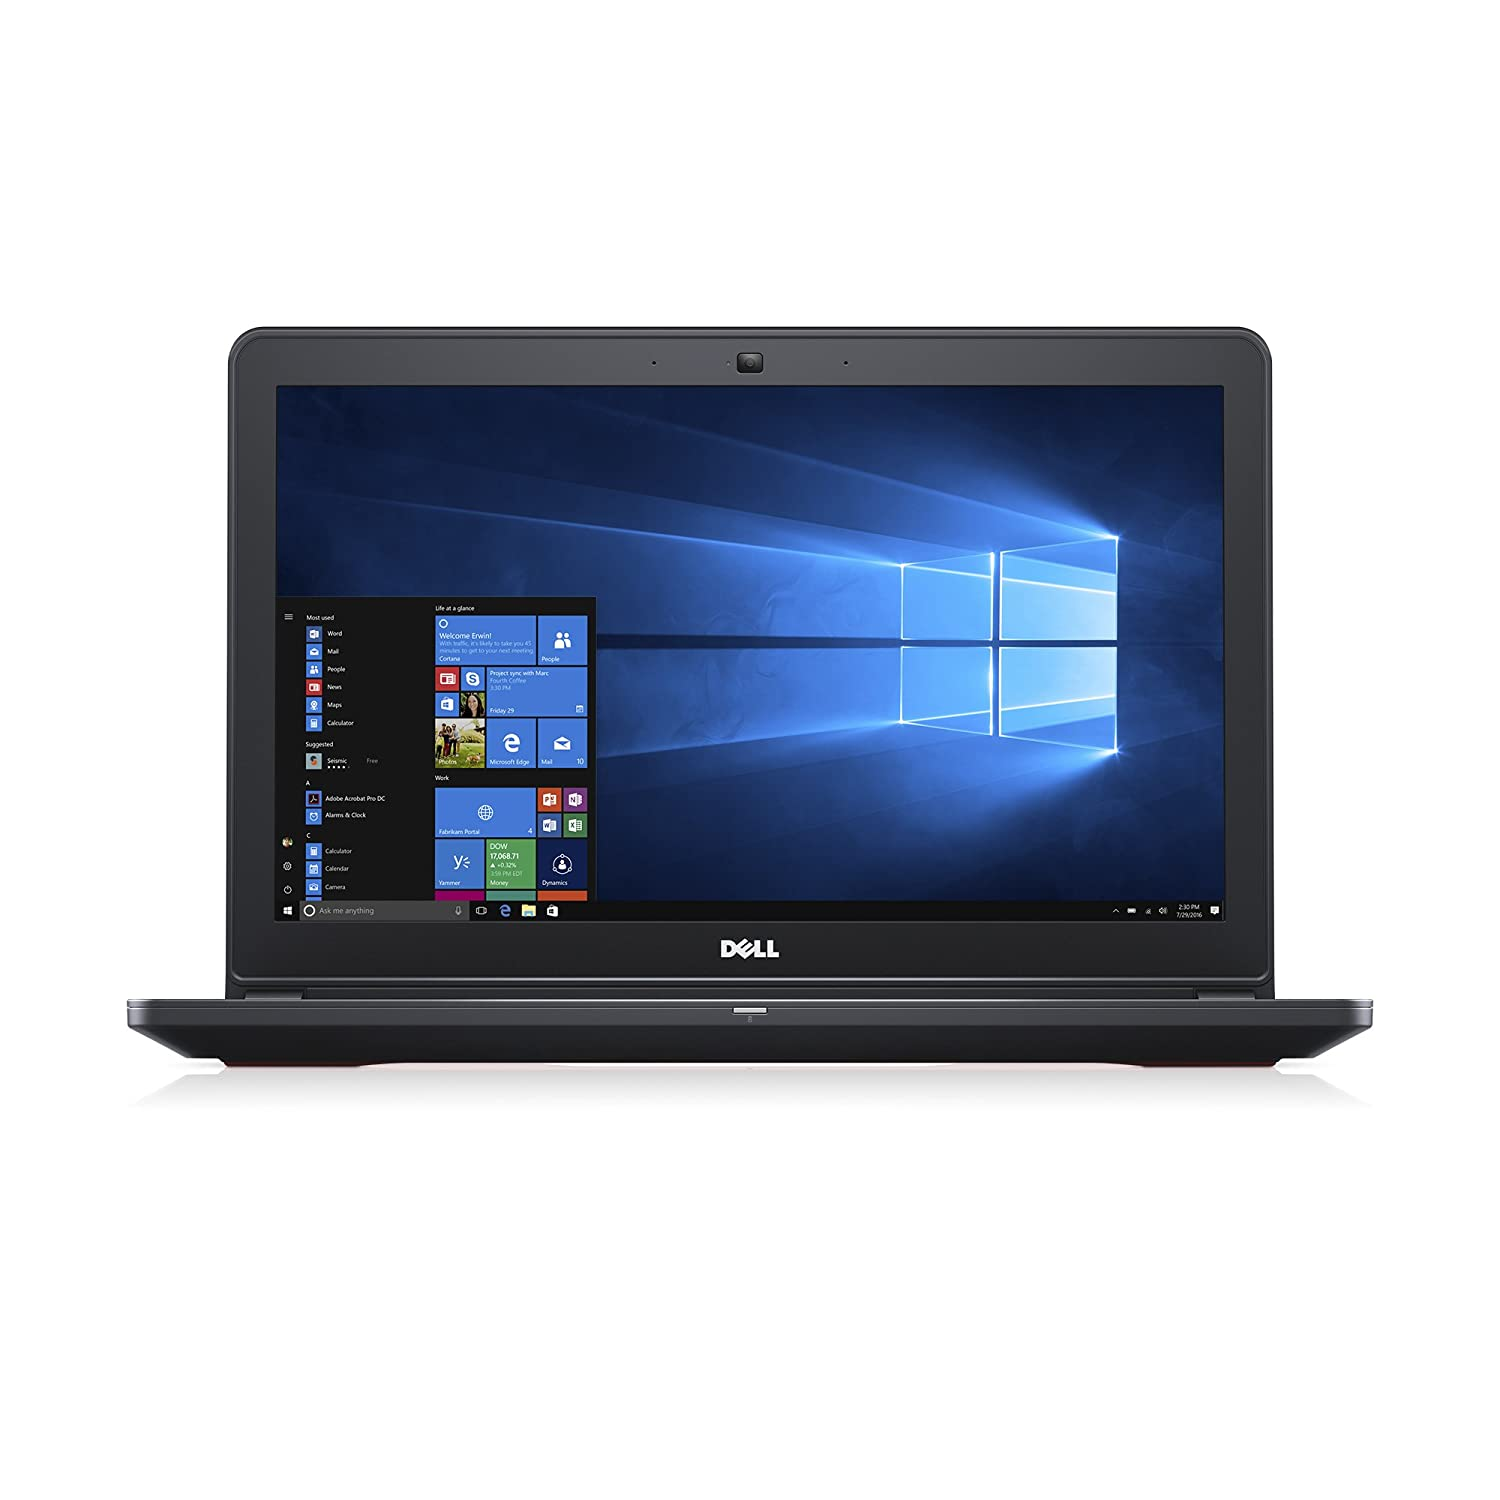 "Dell i5577-5335BLK-PUS Inspiron 15"" Full HD Gaming Laptop - 7th Gen Intel Core i5 - 8GB Memory - 256GB SSD - NVIDIA GeForce GTX 1050 - Black"